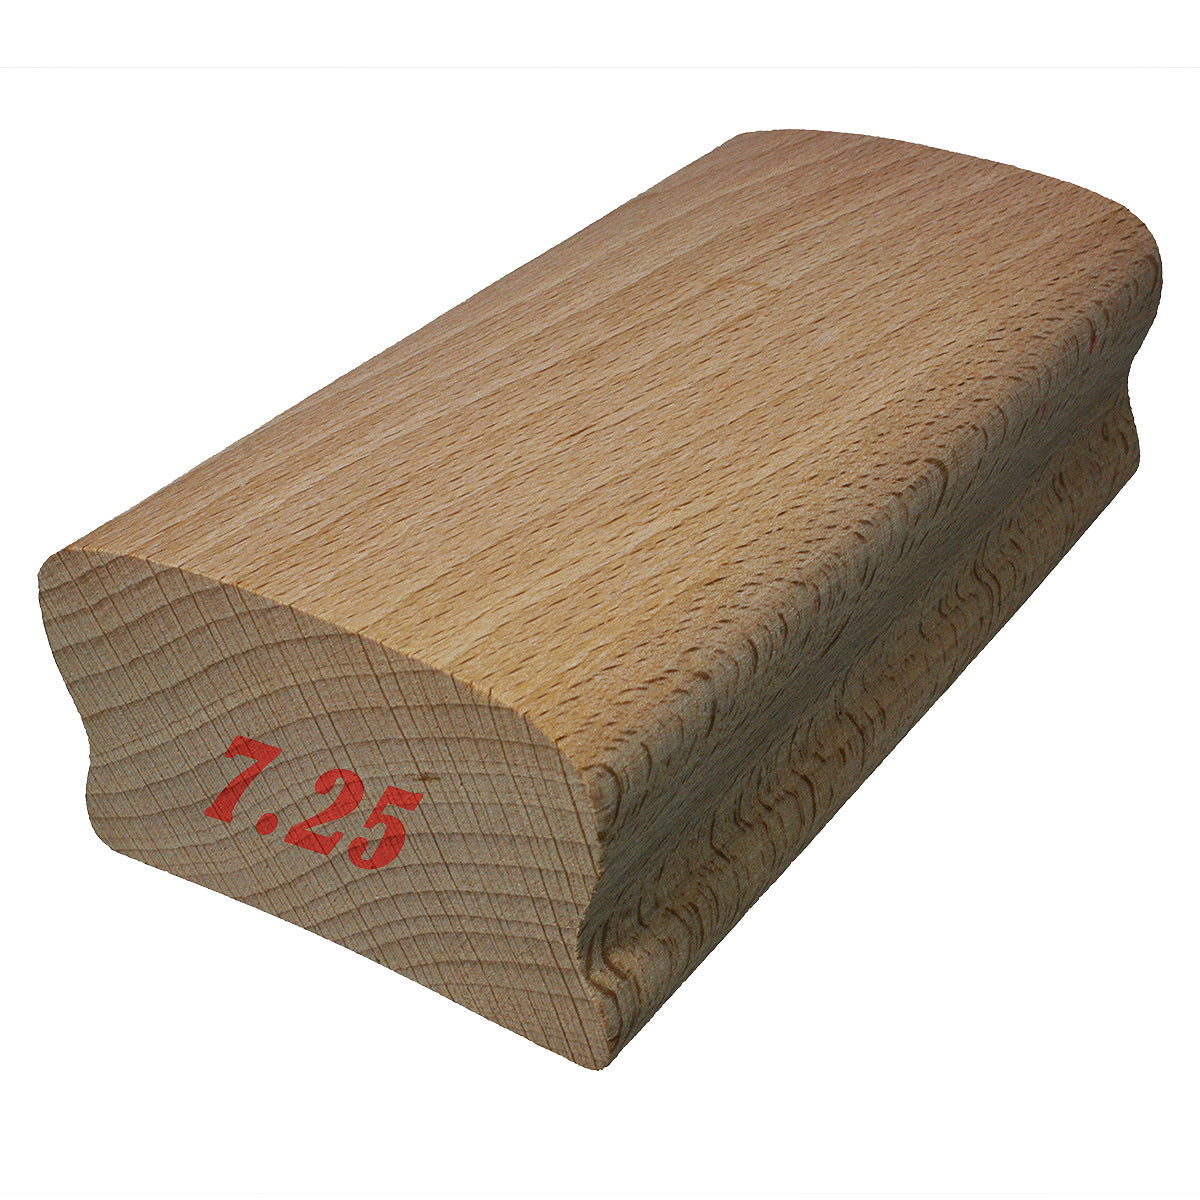 LT-4870 7.25 in. Radius Sanding Block